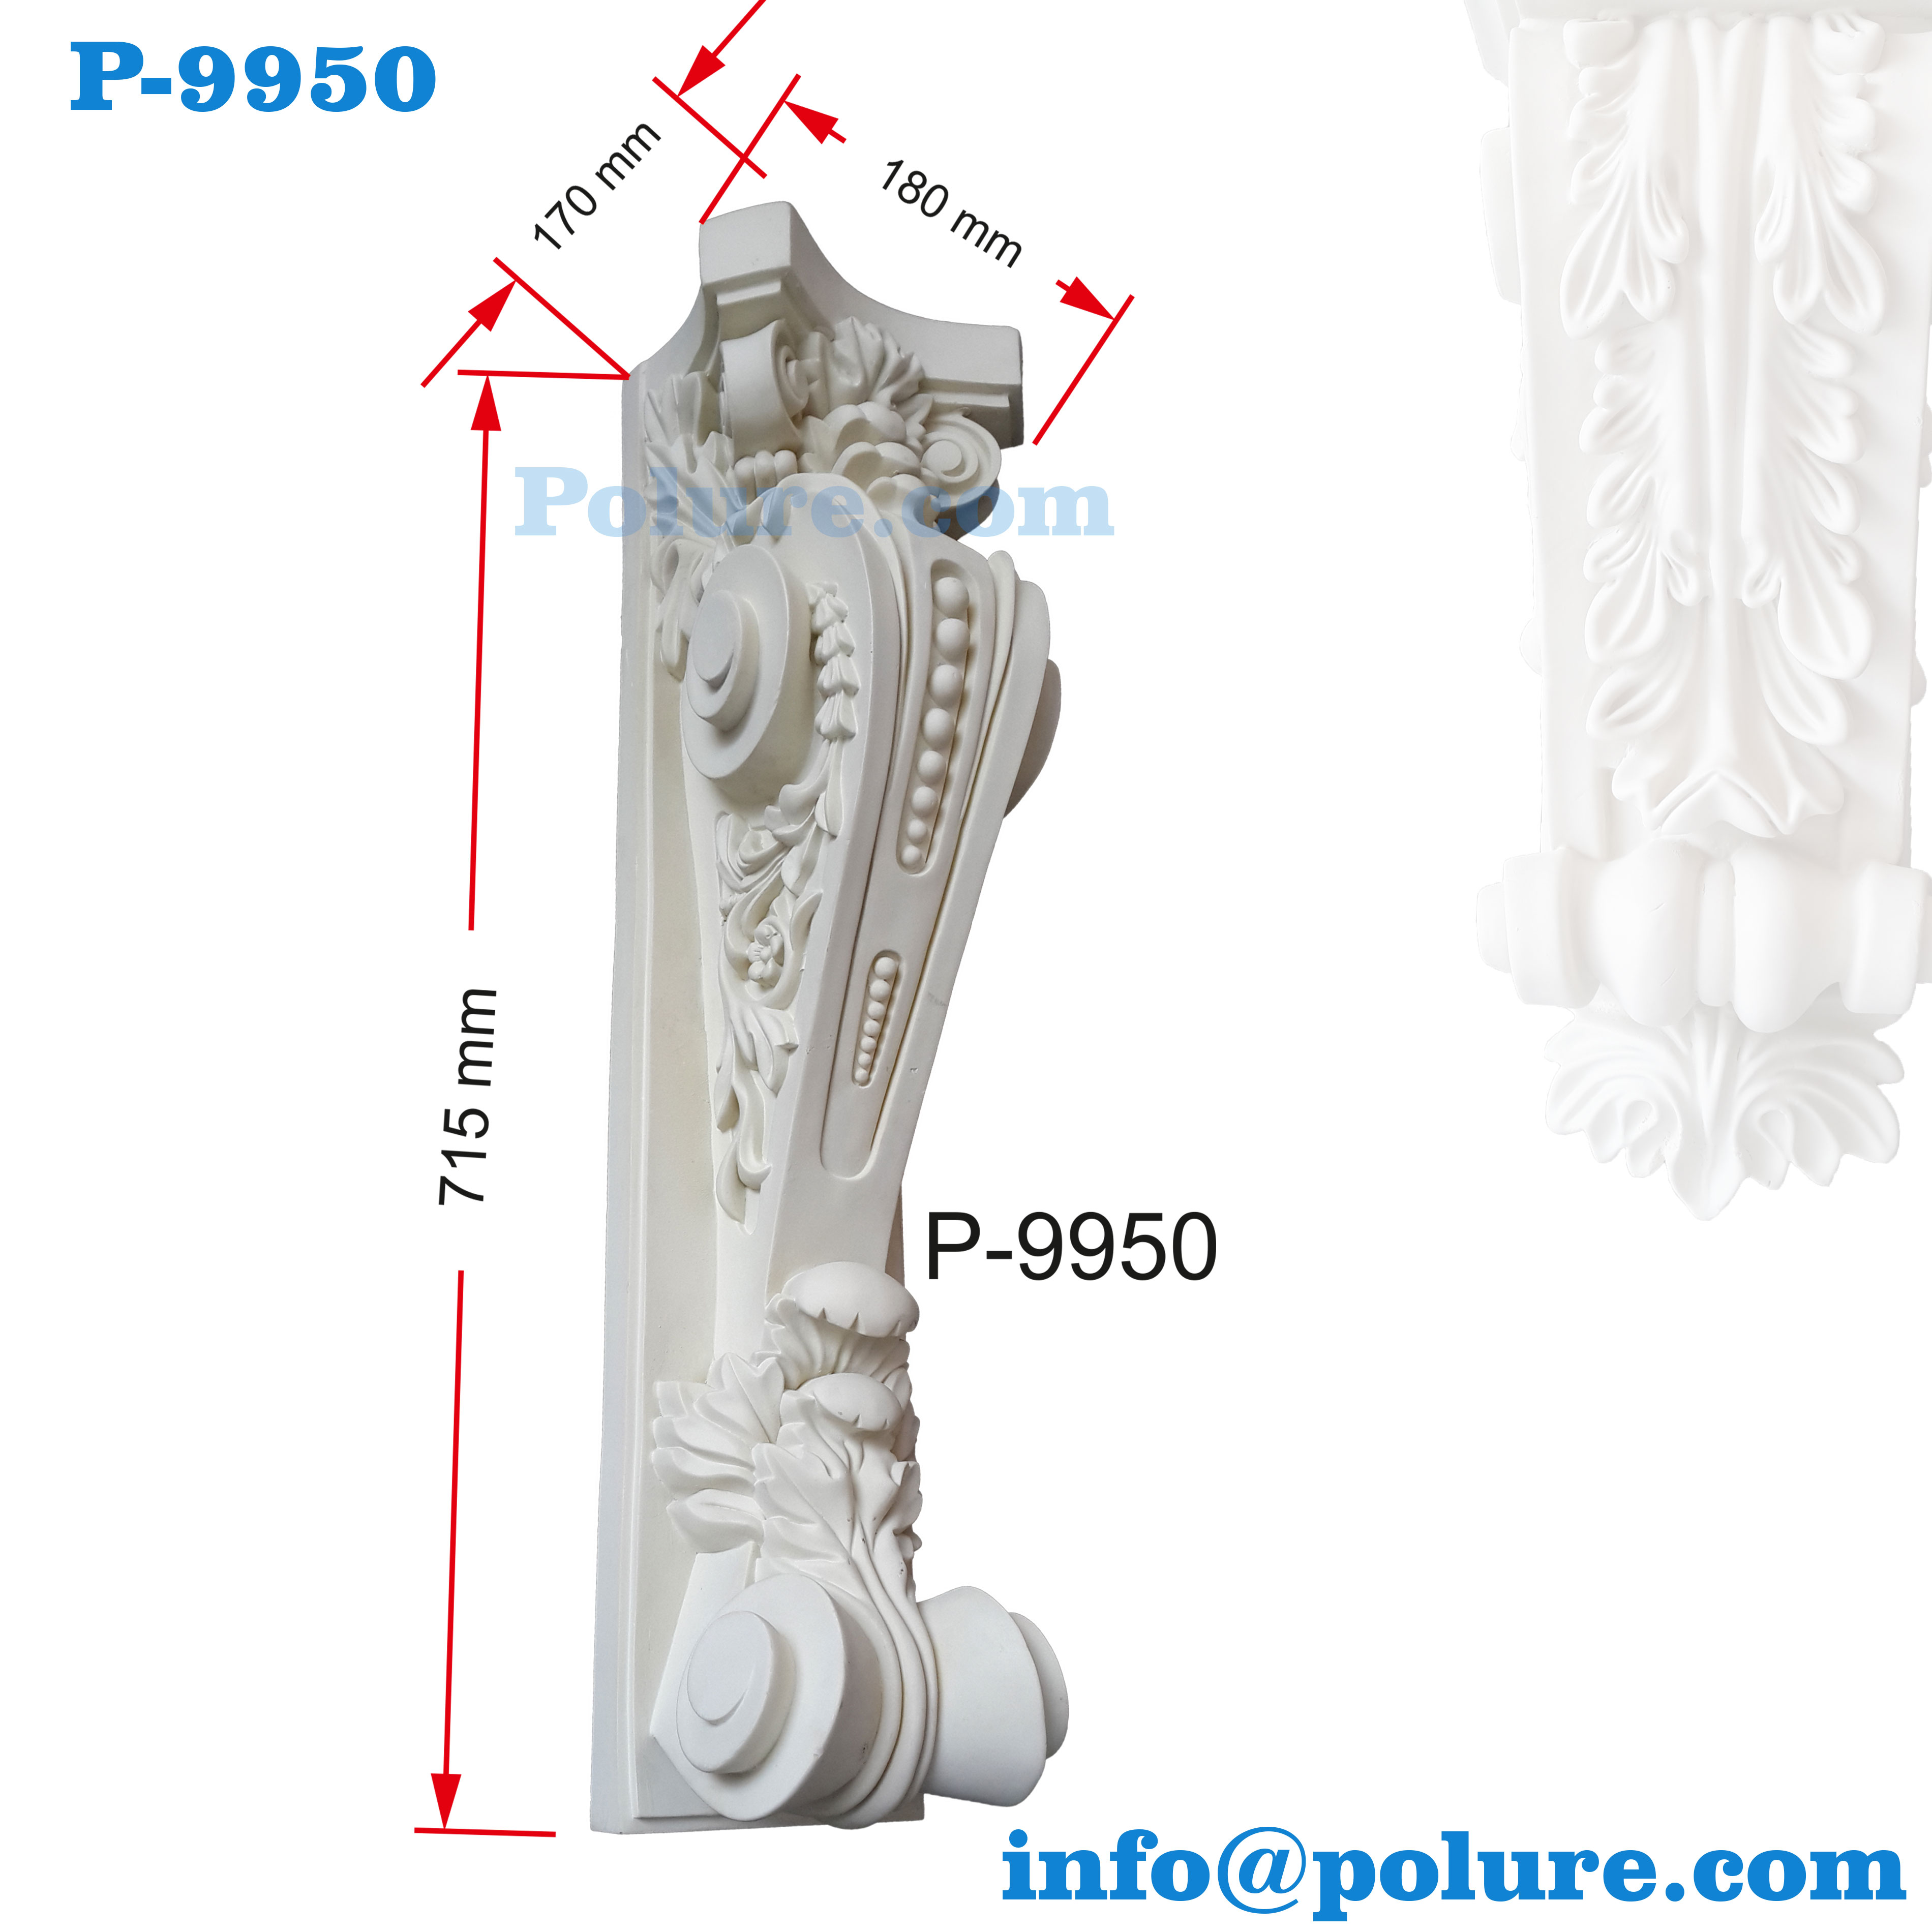 P-9950-polyurethane-classic-decorative-corbel-moulding-interior-exterior-decoration-pu (7)